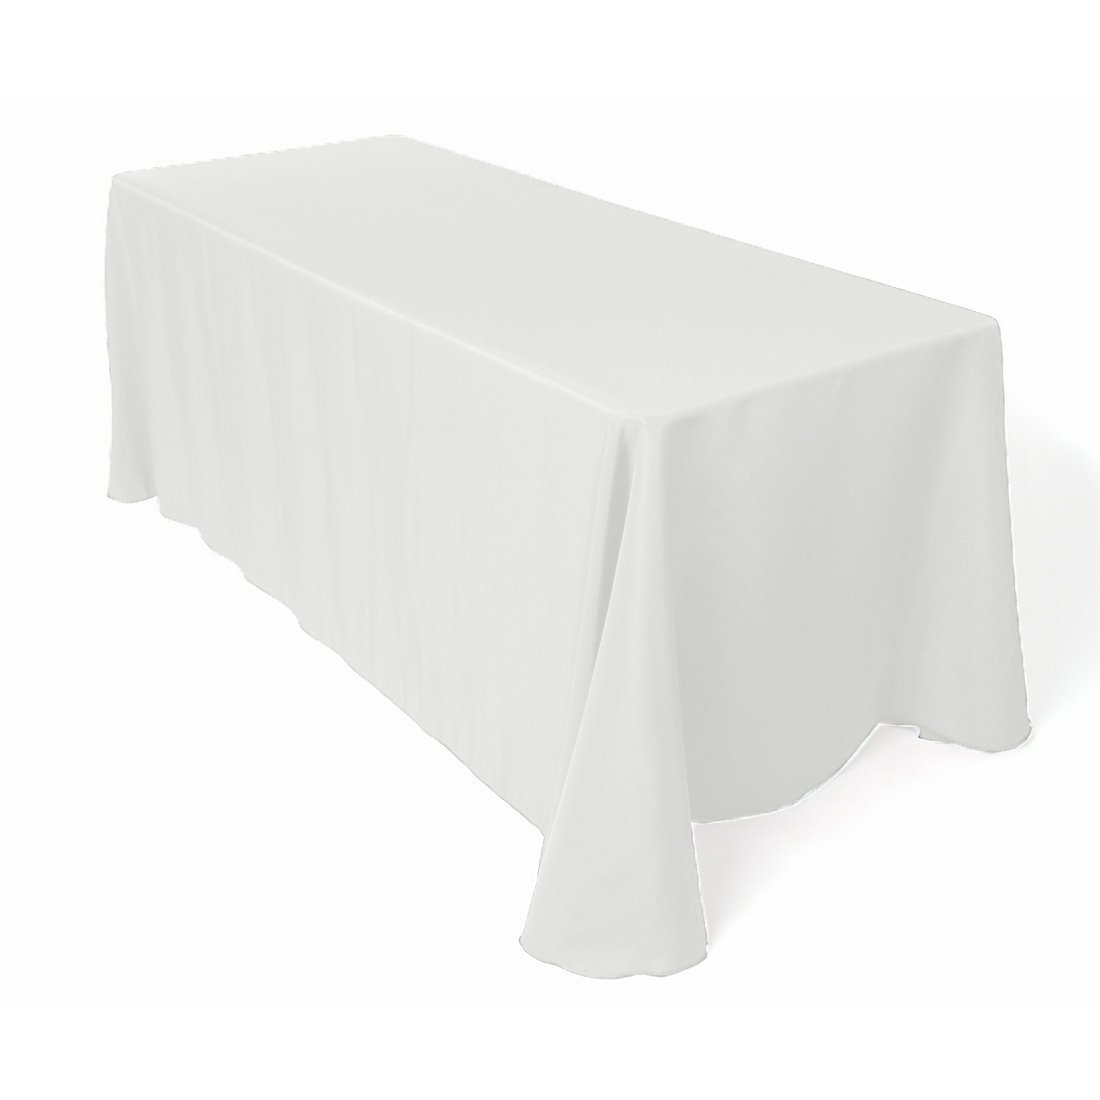 Craft and Party - 10 pcs Rectangular Tablecloth for Home, Party, Wedding or Restaurant Use (90'' X 132'', White)